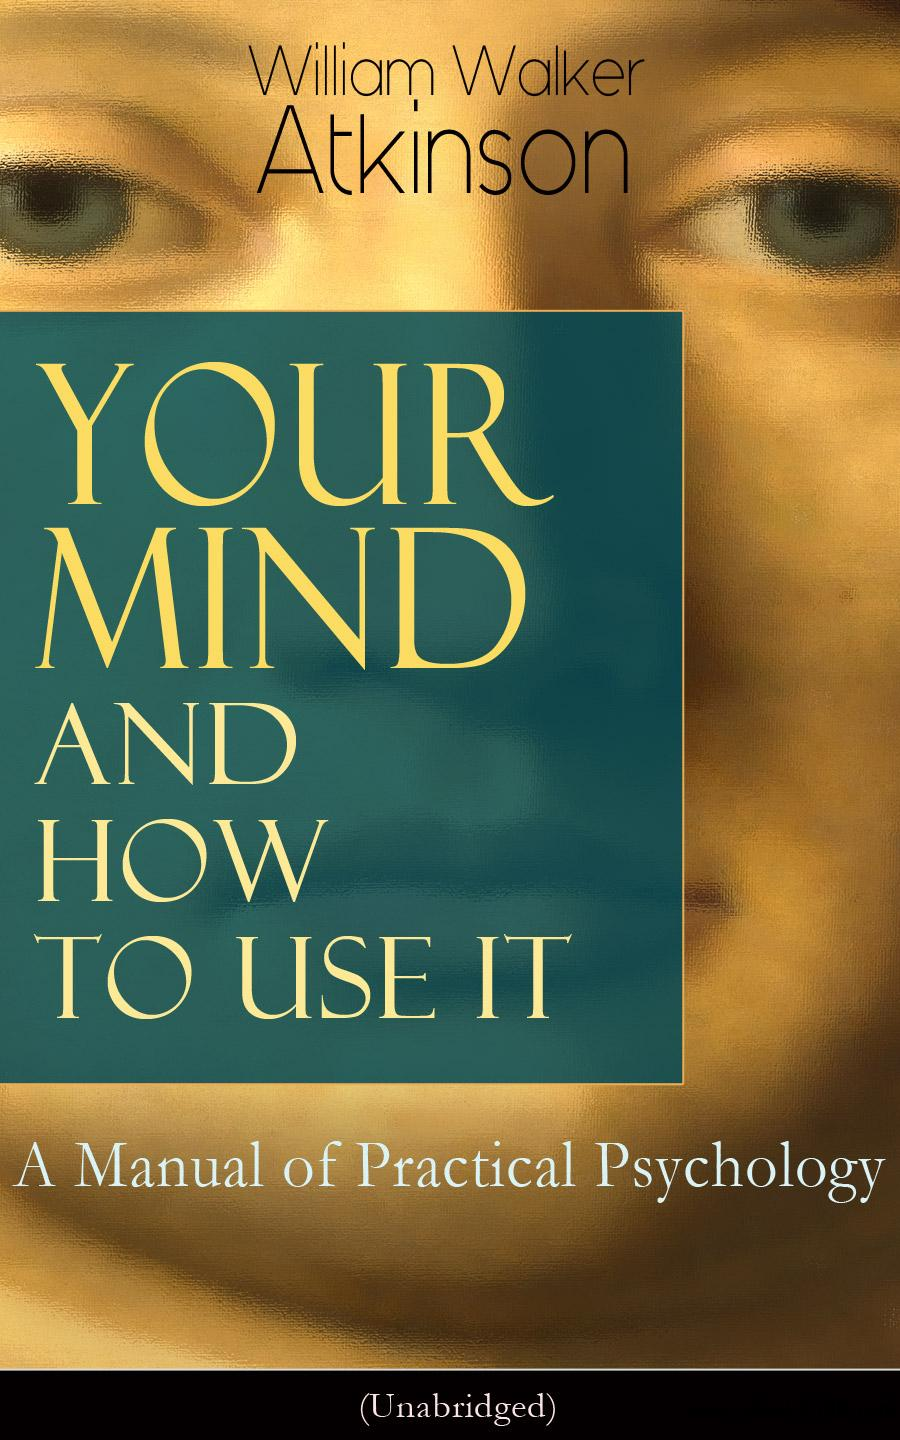 Your Mind and How to Use It: A Manual of Practical Psychology (Unabridged): From the American pioneer of the New Thought...